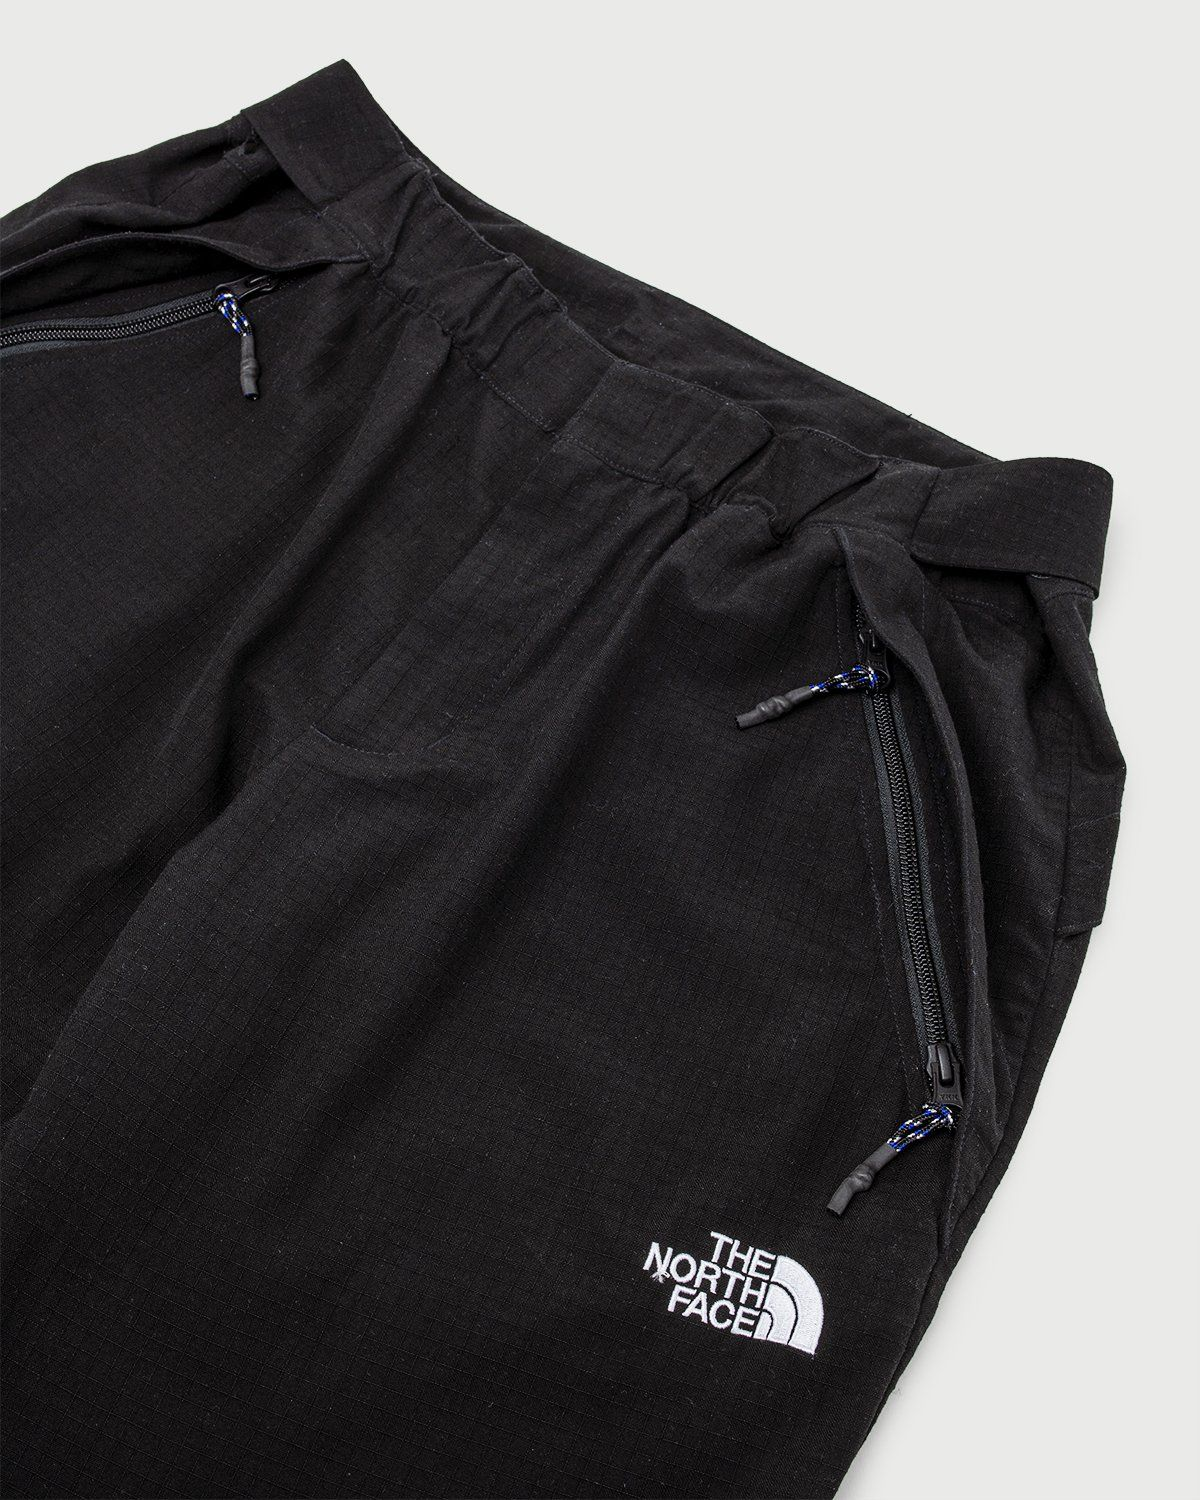 The North Face Black Series — Ripstop Trousers Black - Image 3